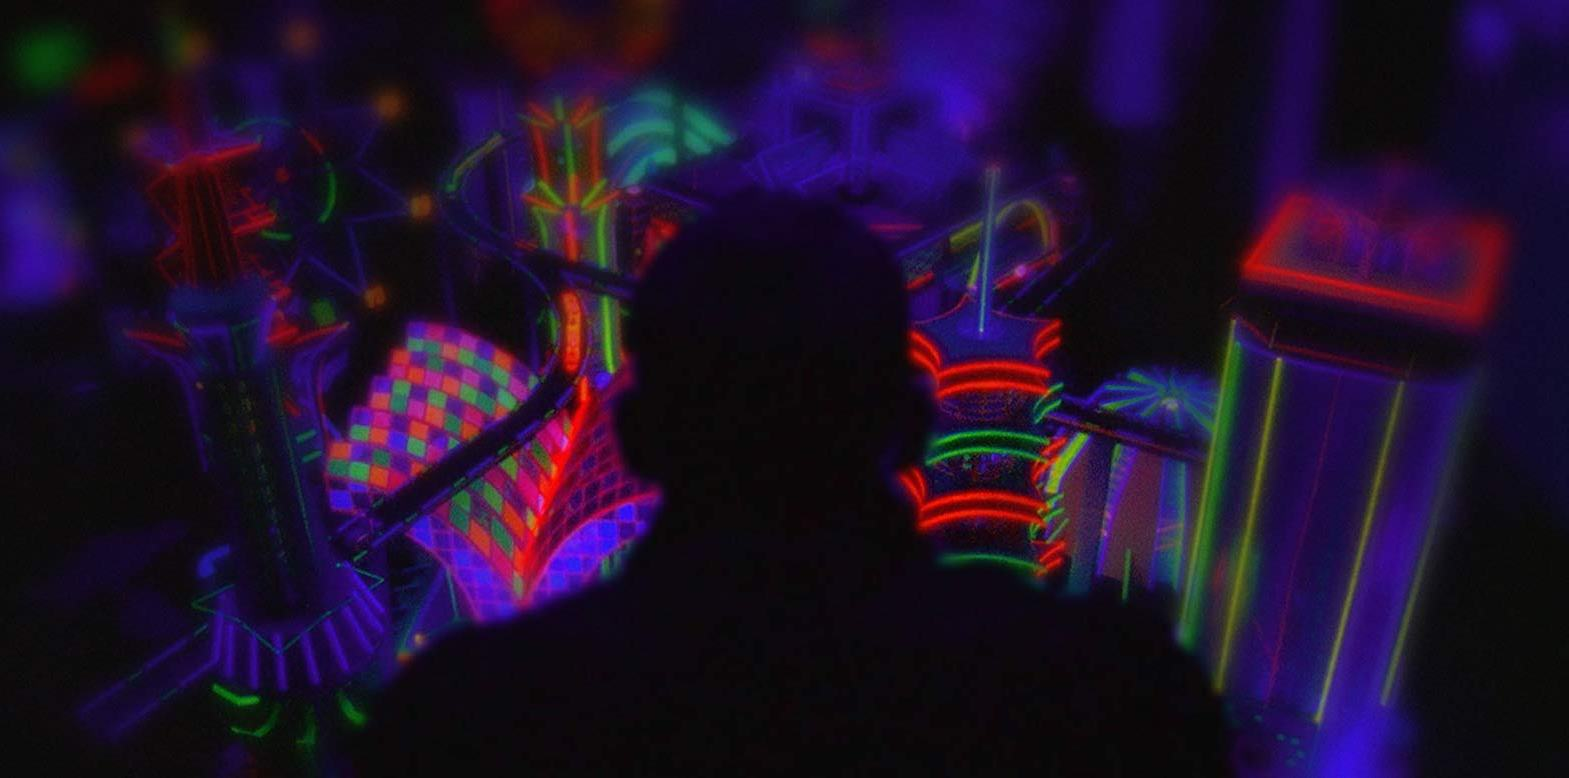 Enter the Void (2009) - Gaspar Noe's Day Glo vision of the afterlife